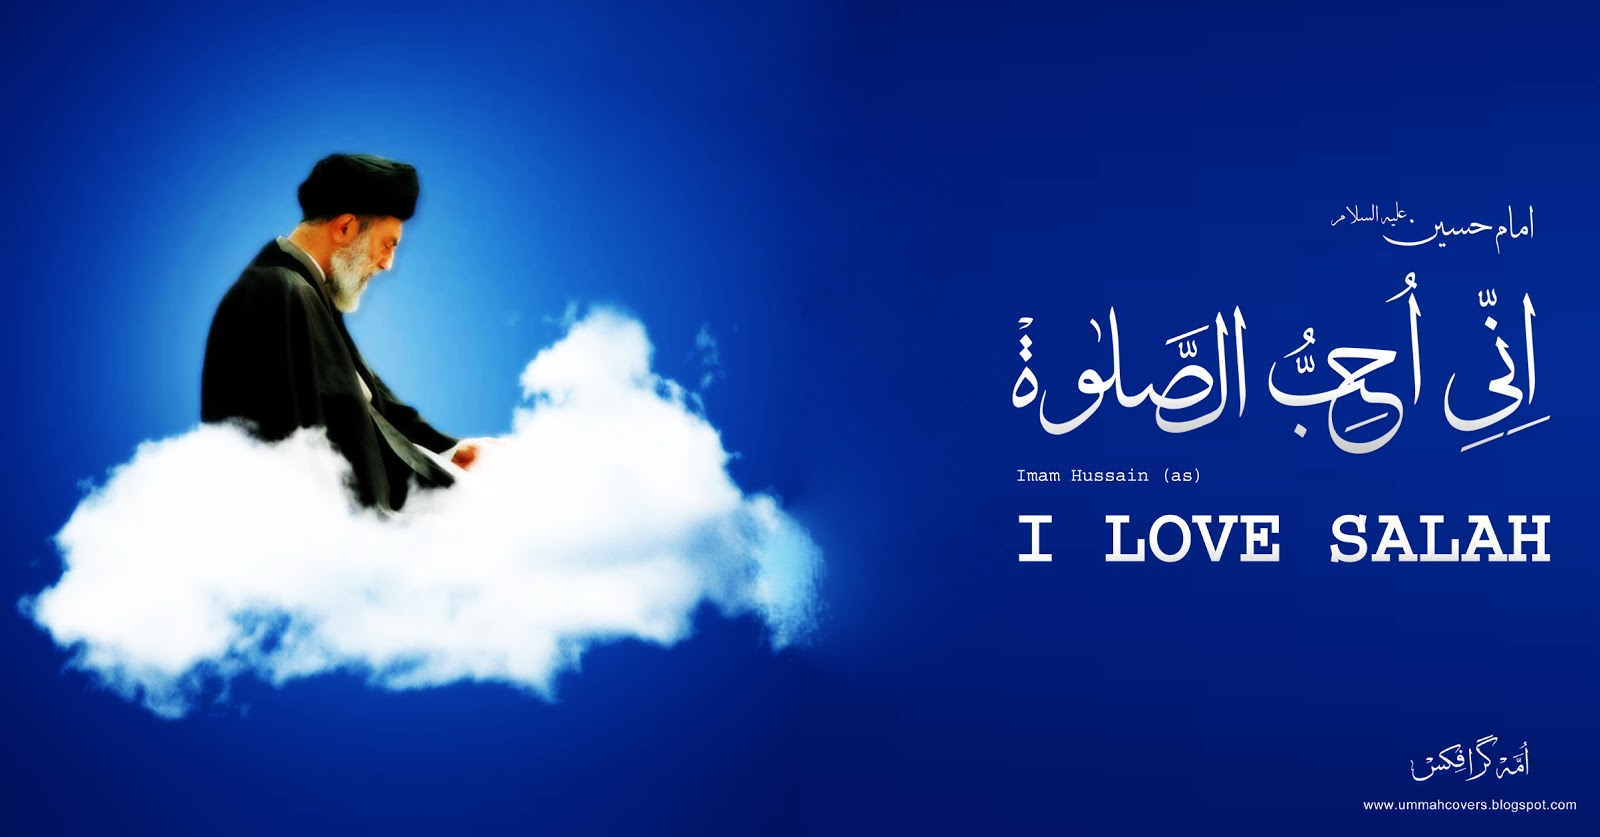 UMMAH Graphics: I Love Salah ( Imam Hussain a.s ) Wallpaper + FB cover